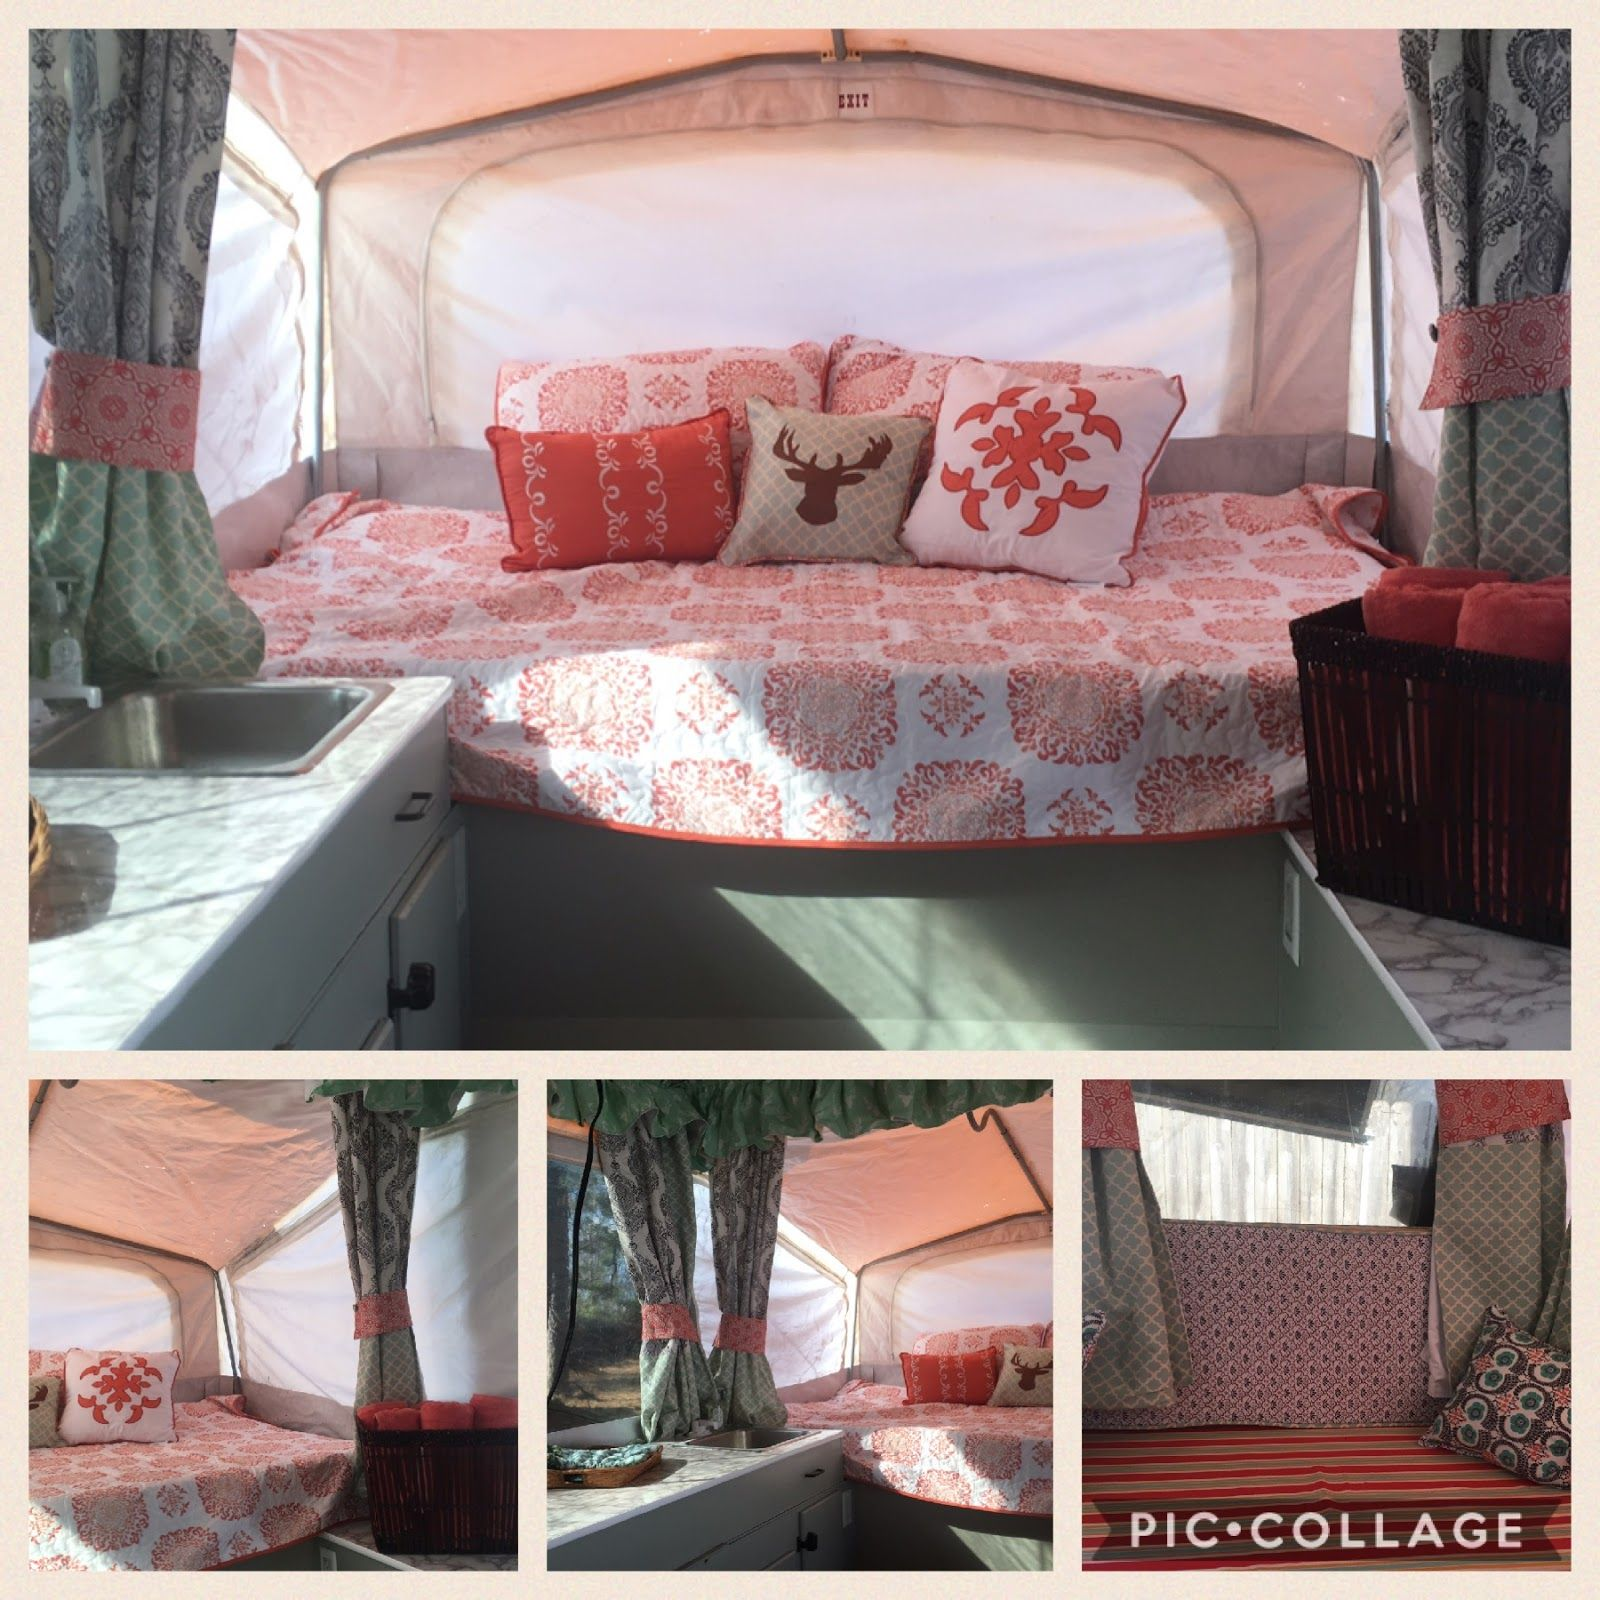 Pop Up Camper Reveal Ready To Camp Jayco Pop Up Campers